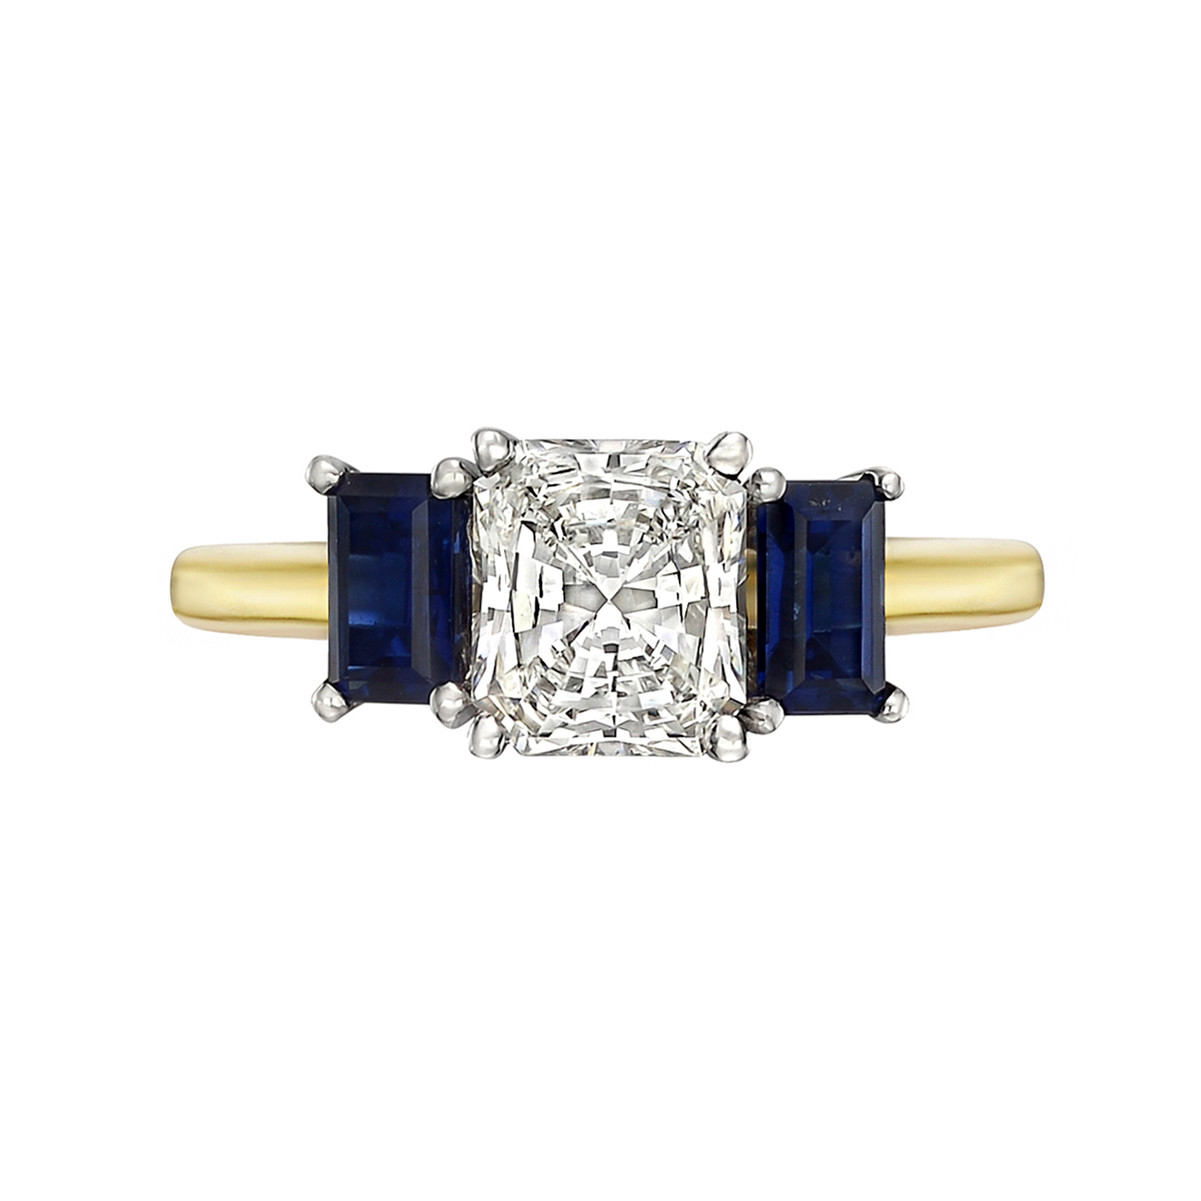 1.13ct Radiant-Cut Diamond Ring (I/VS1)